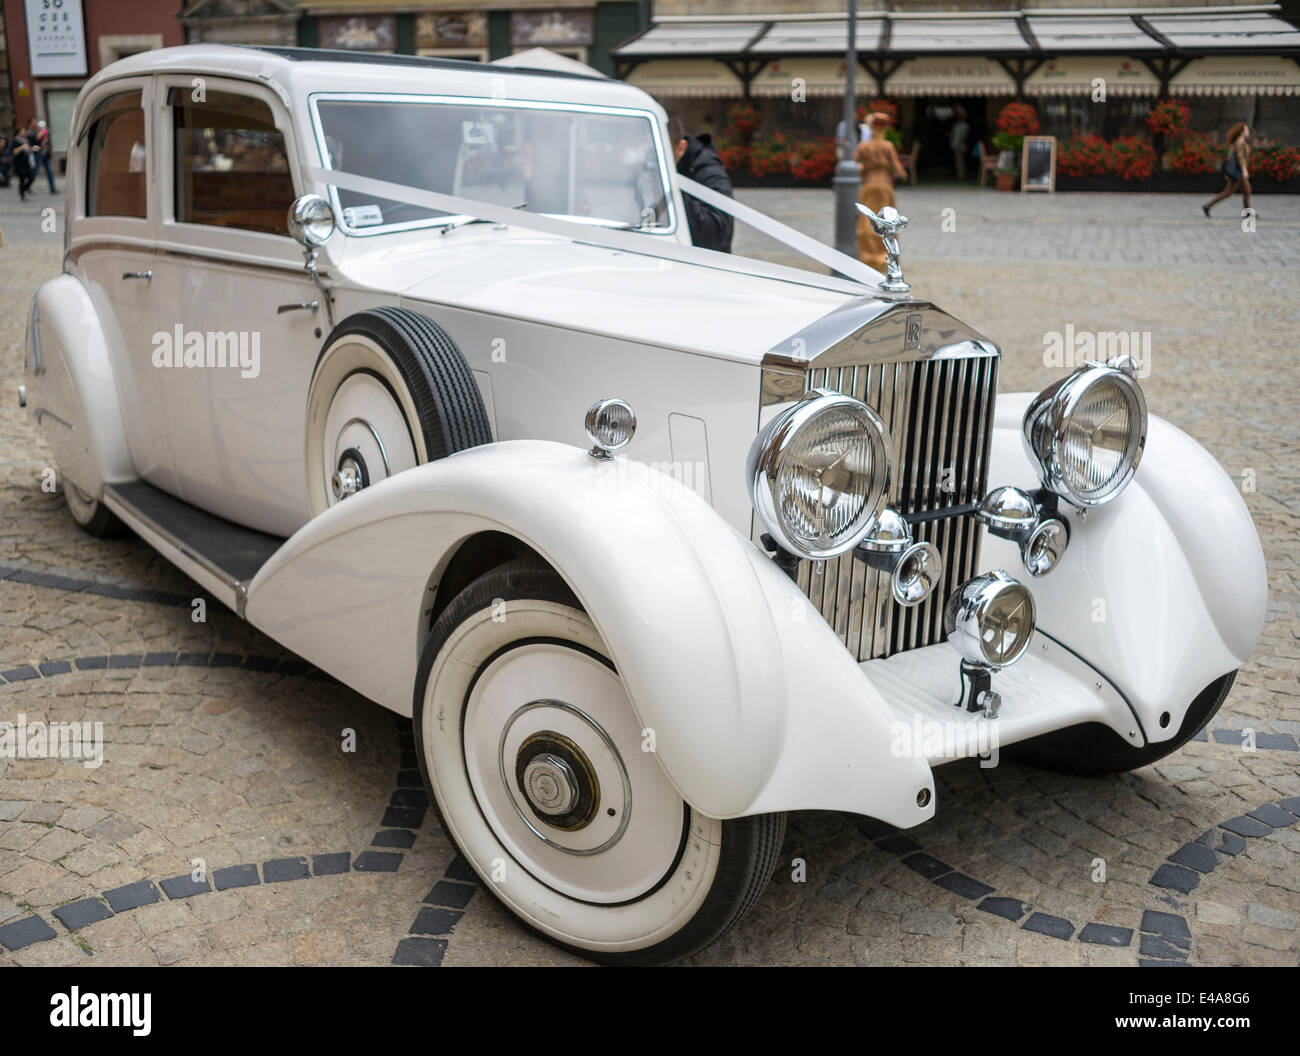 White Rolls Royce 20 25 Luxury Vintage Car Stock Photo Alamy